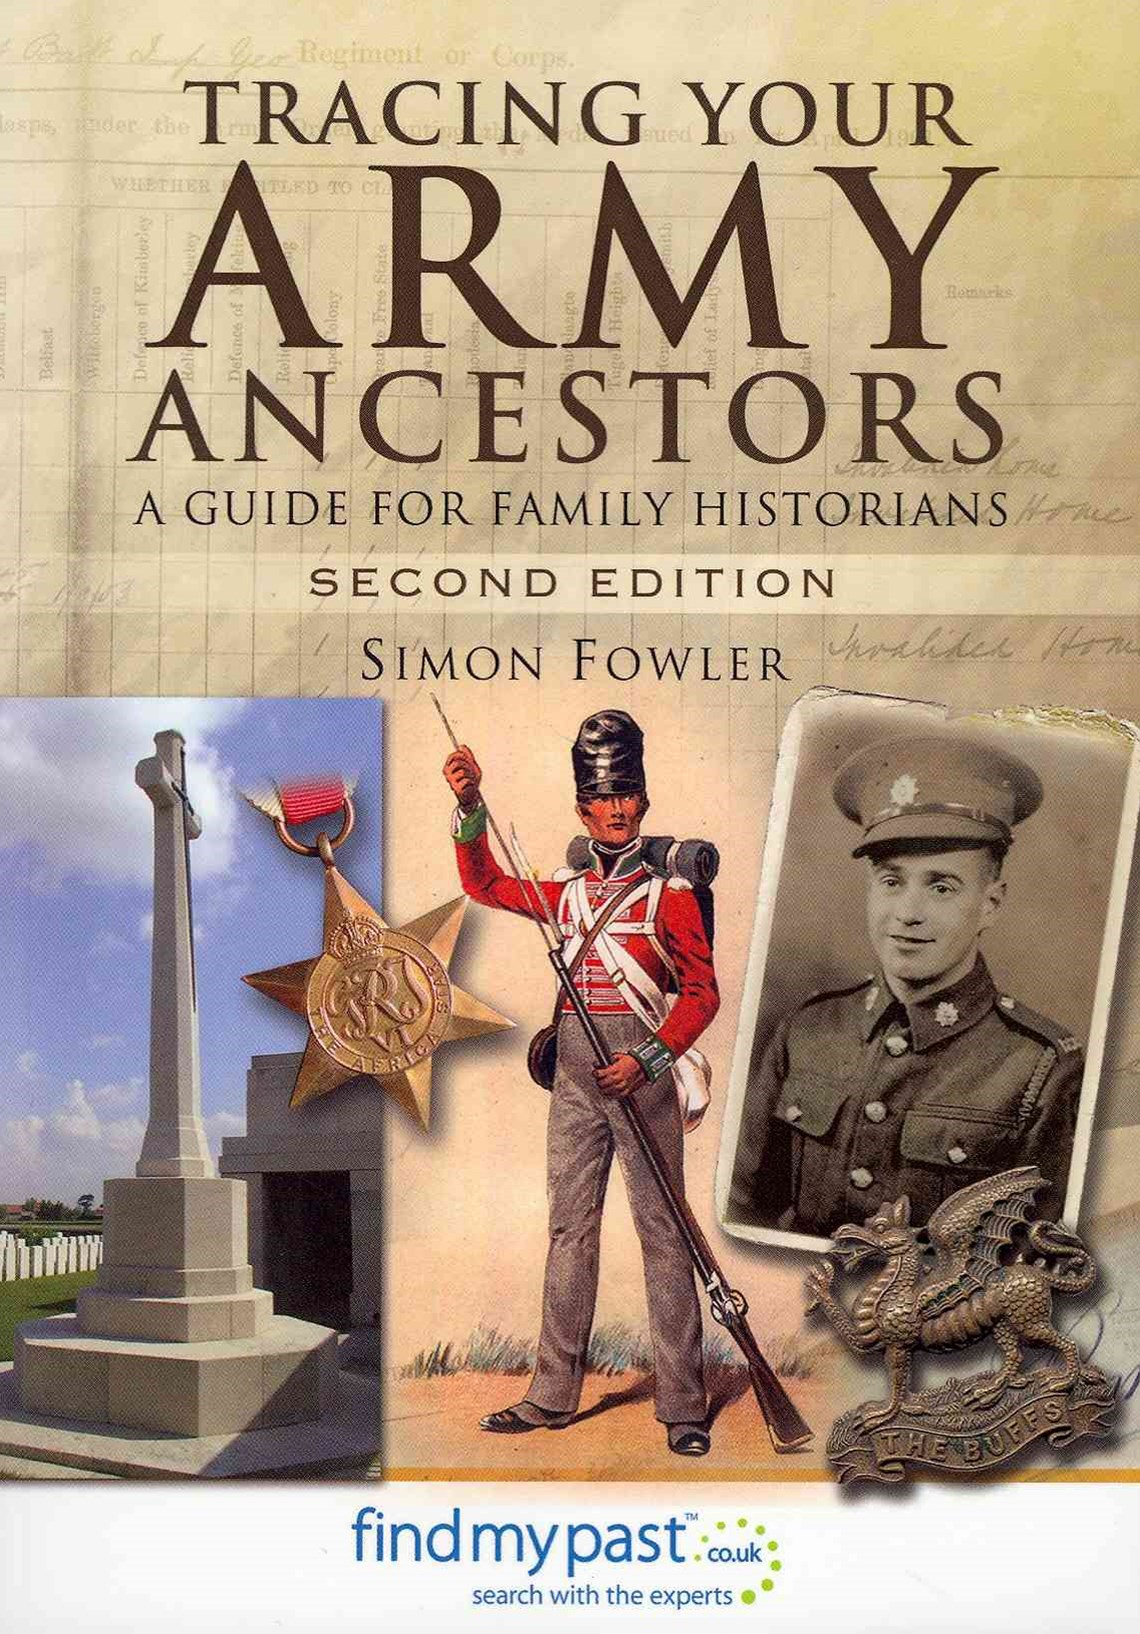 Tracing Your Army Ancestors - 2nd Edition